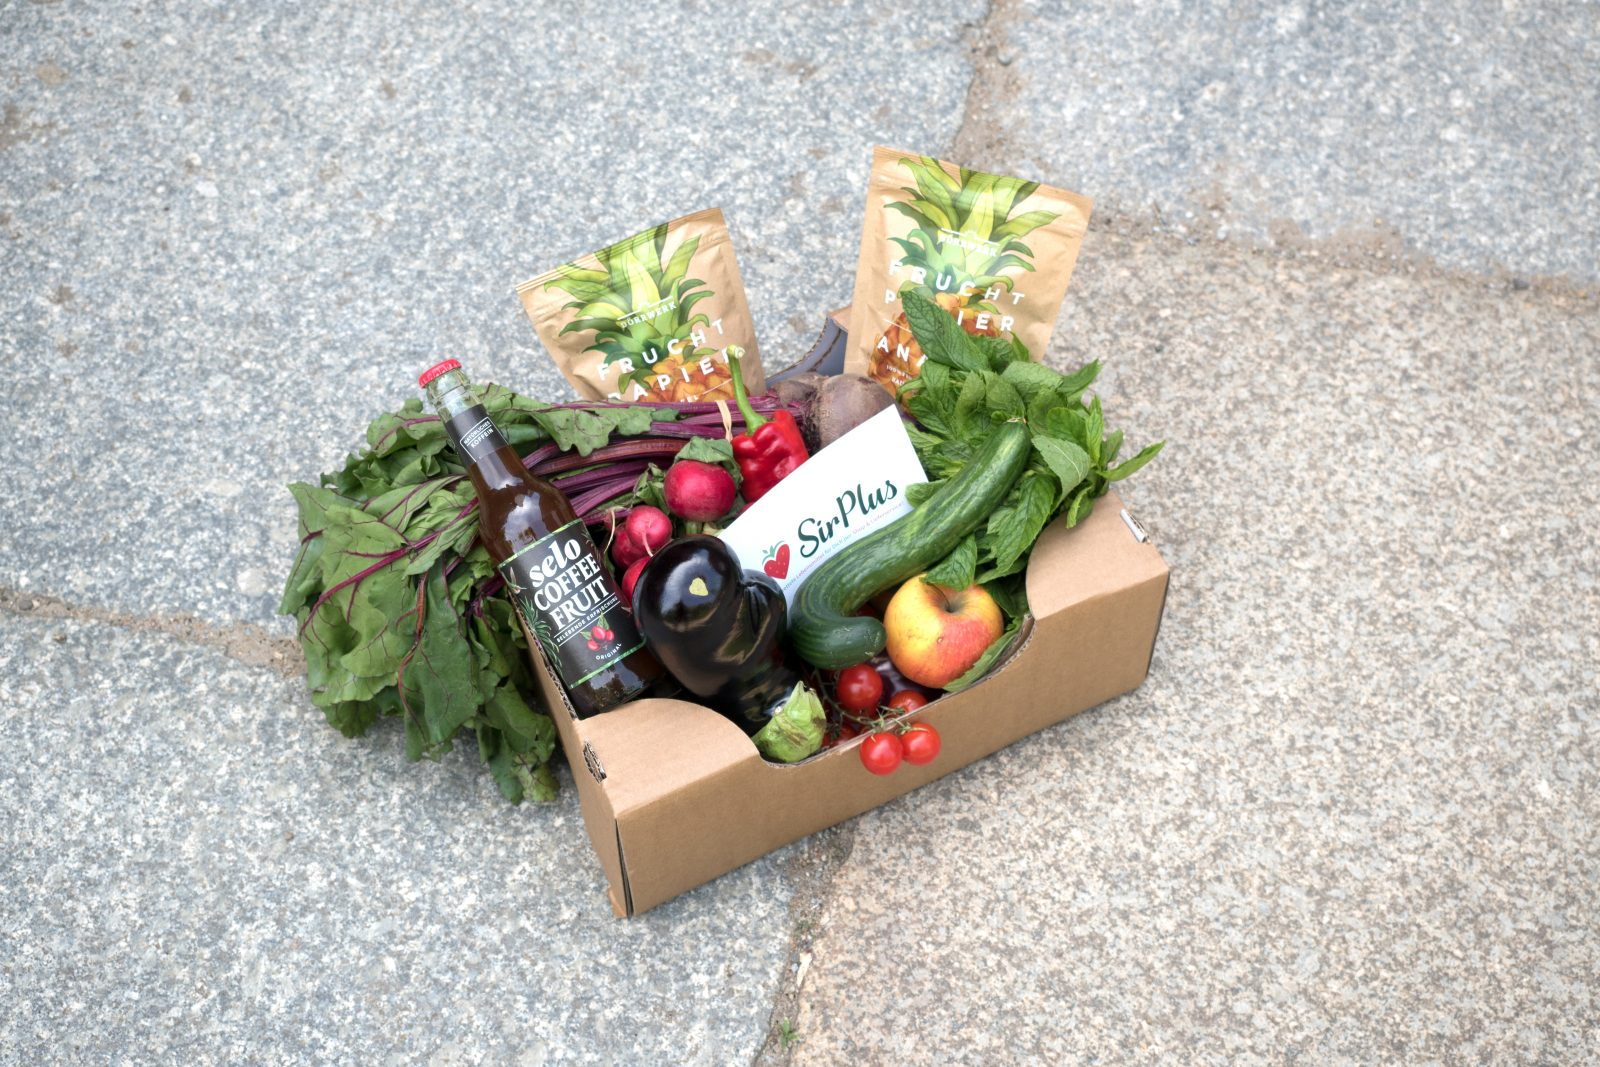 A box with fresh produce and other food products by Sir Plus on the pavement. Sir Plus is a Berlin-based start up combating food waste.